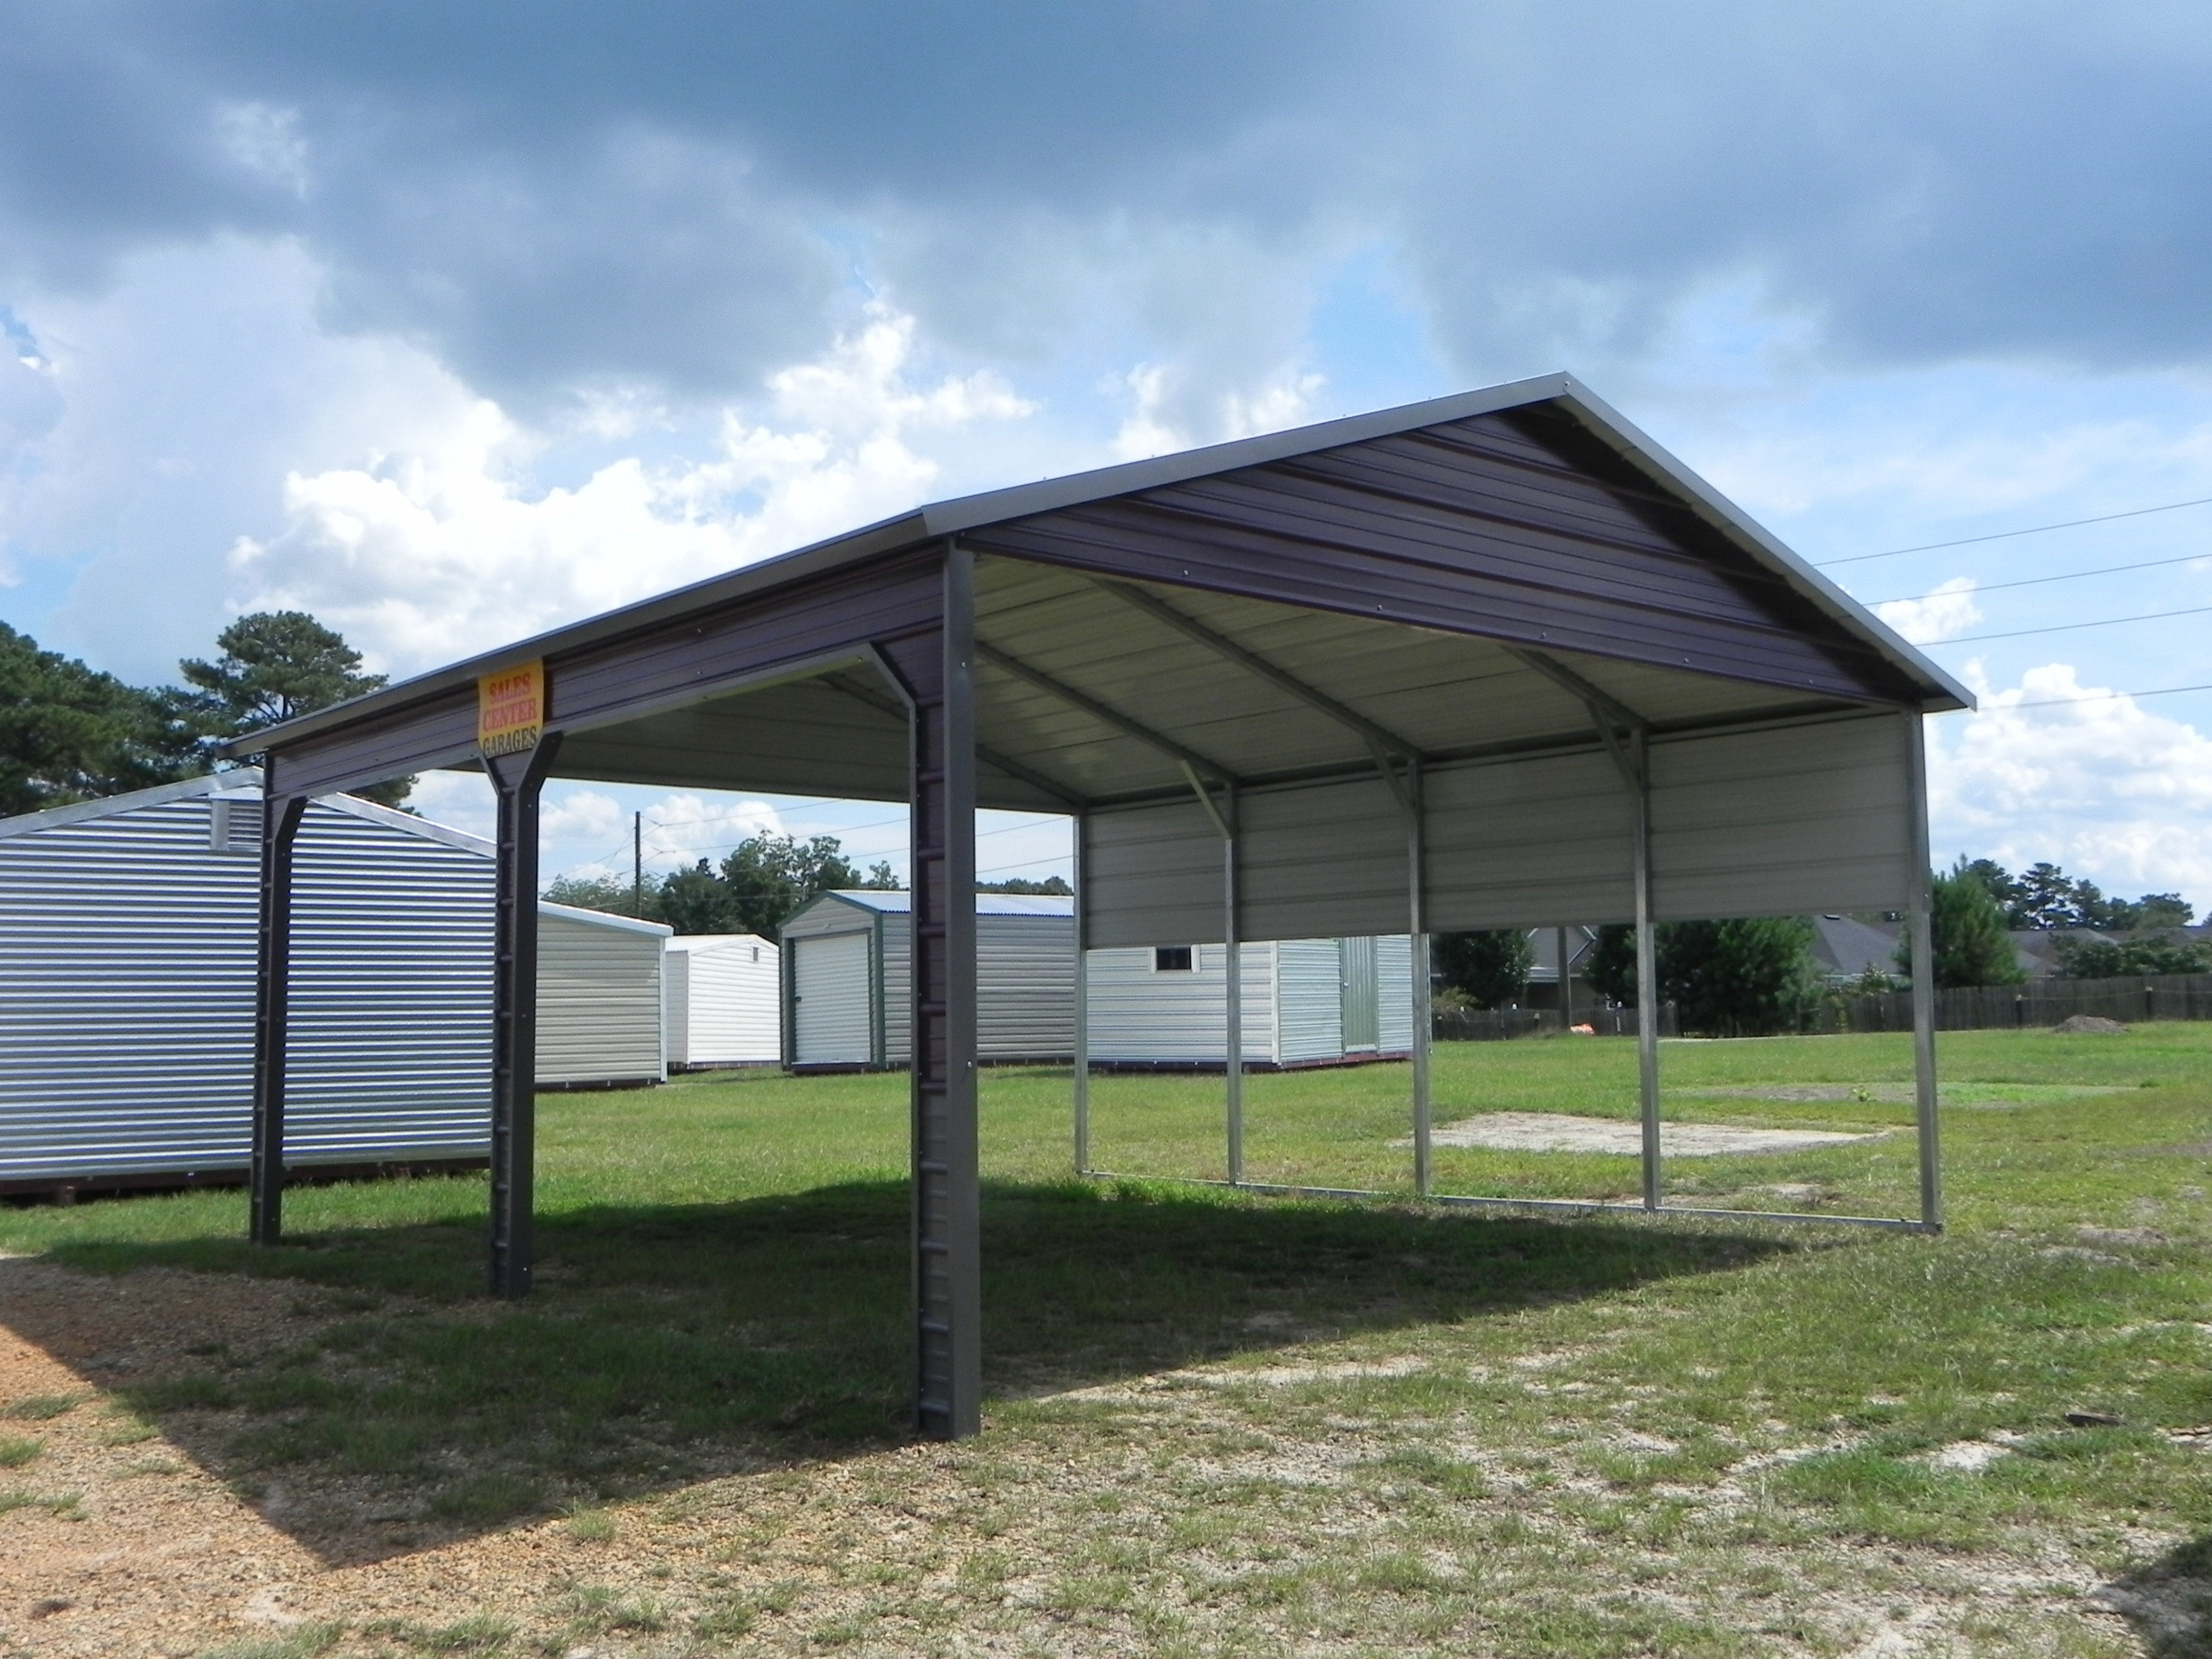 Carports Sheds, Portable Storage Buildings L Outdoor Options Carports Wooden Quotes